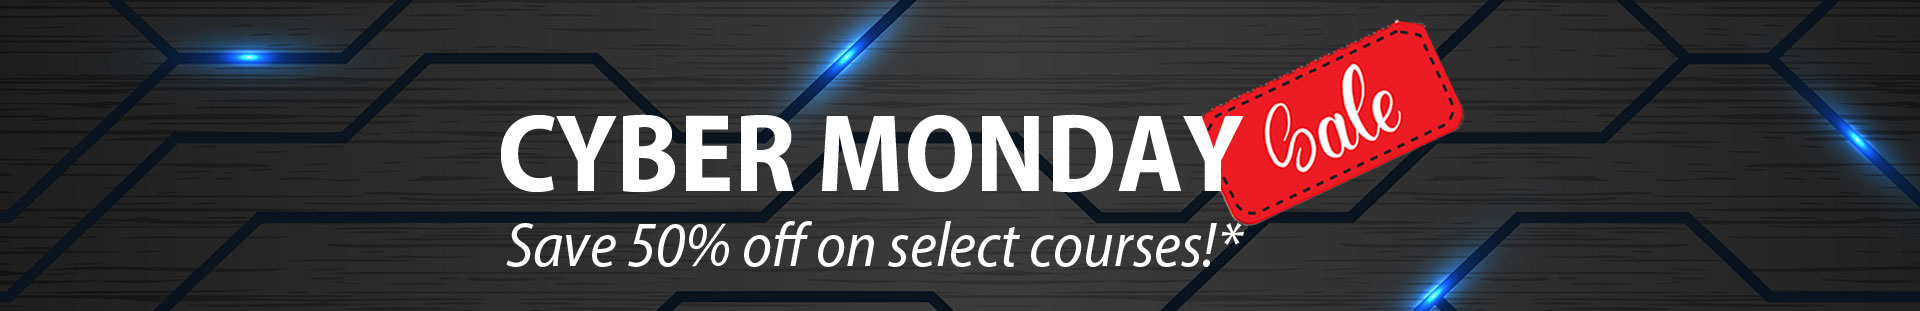 cyber-monday-sale-banner-main-2